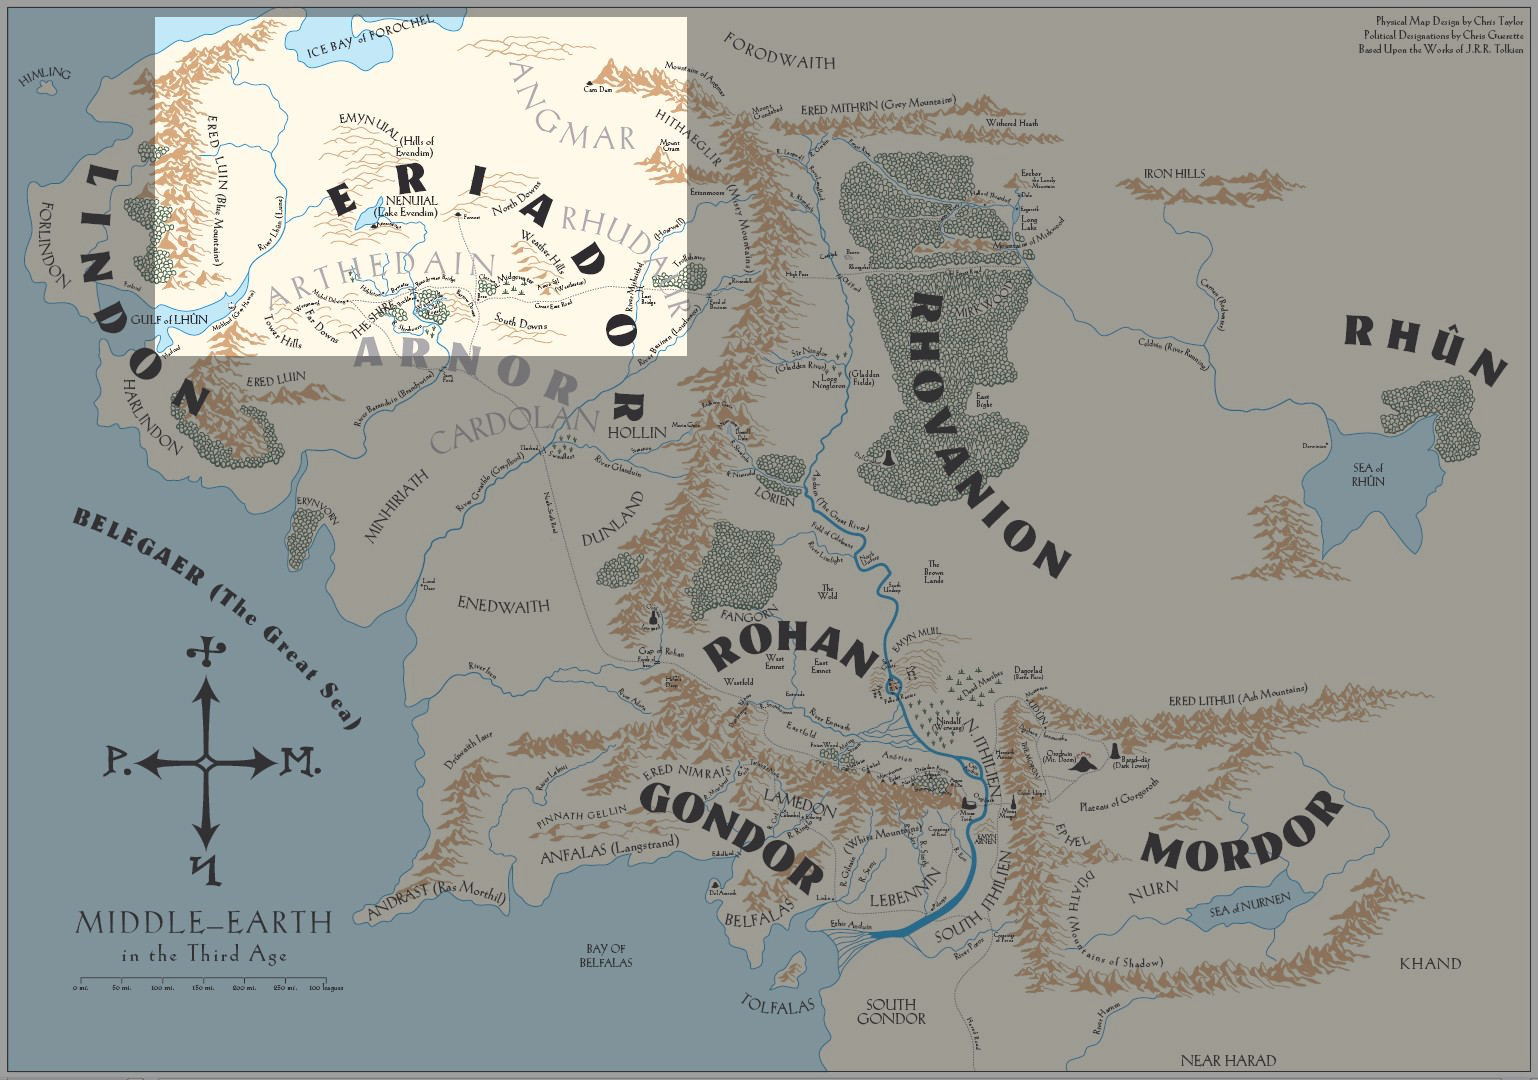 Middle-earth-Where.jpg